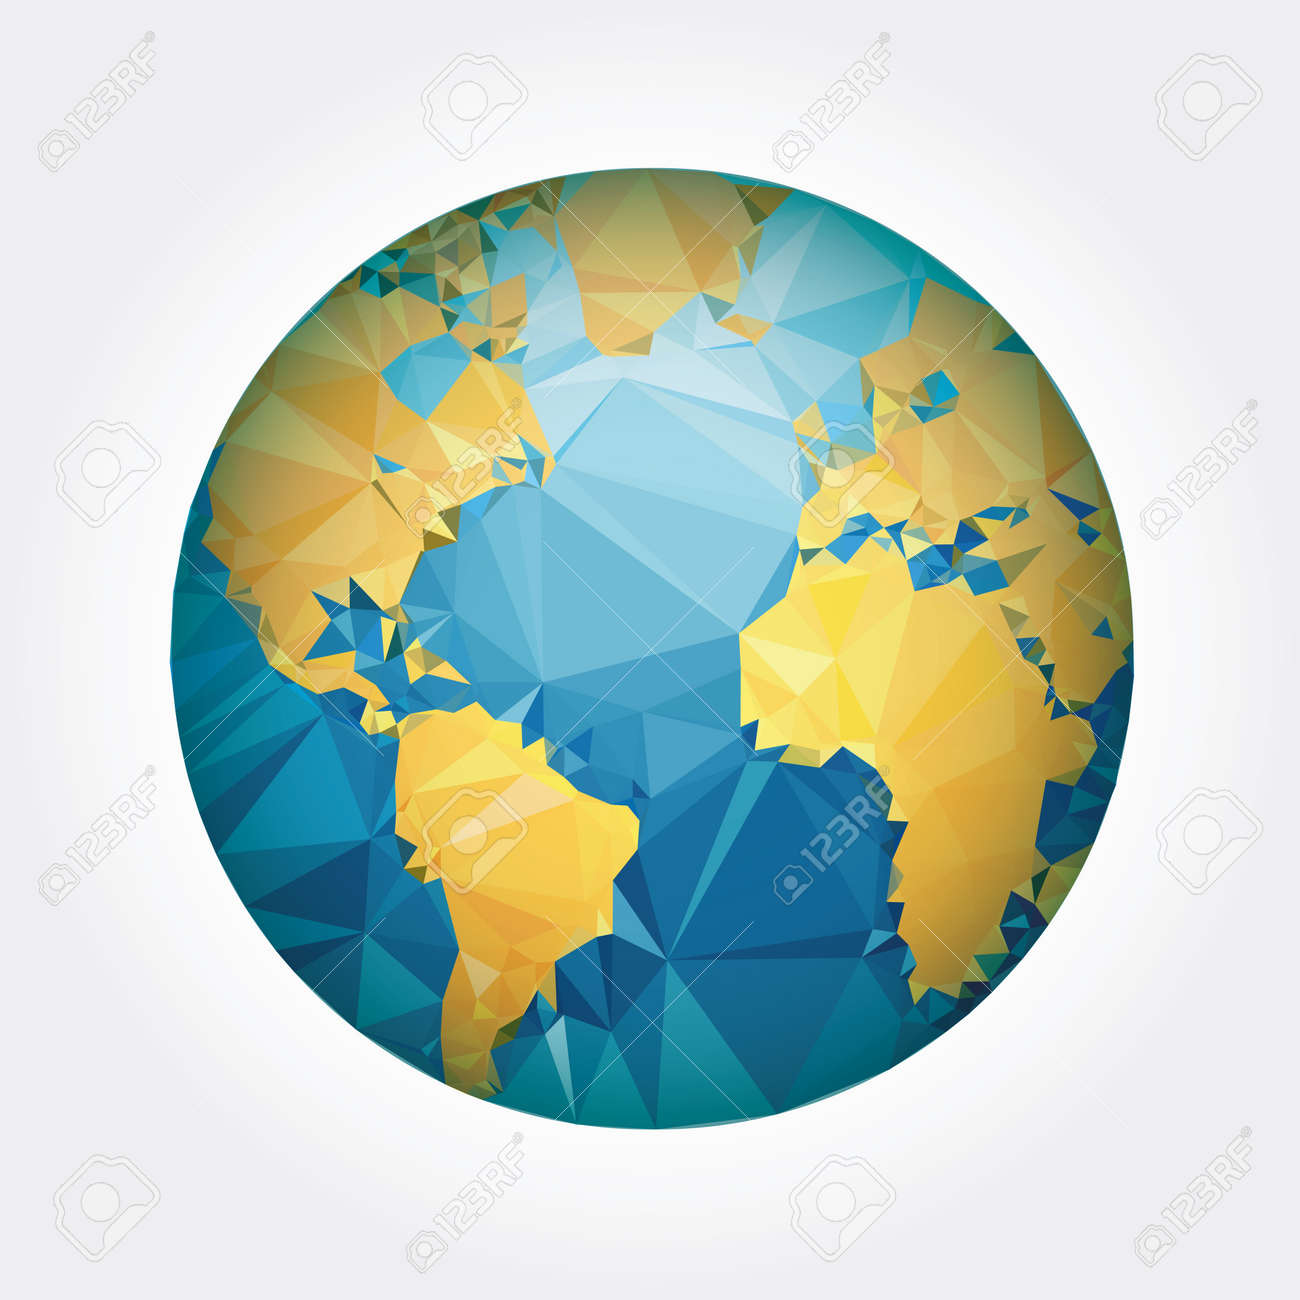 Earth world map low poly vector illustration royalty free cliparts earth world map low poly vector illustration stock vector 38662479 gumiabroncs Images